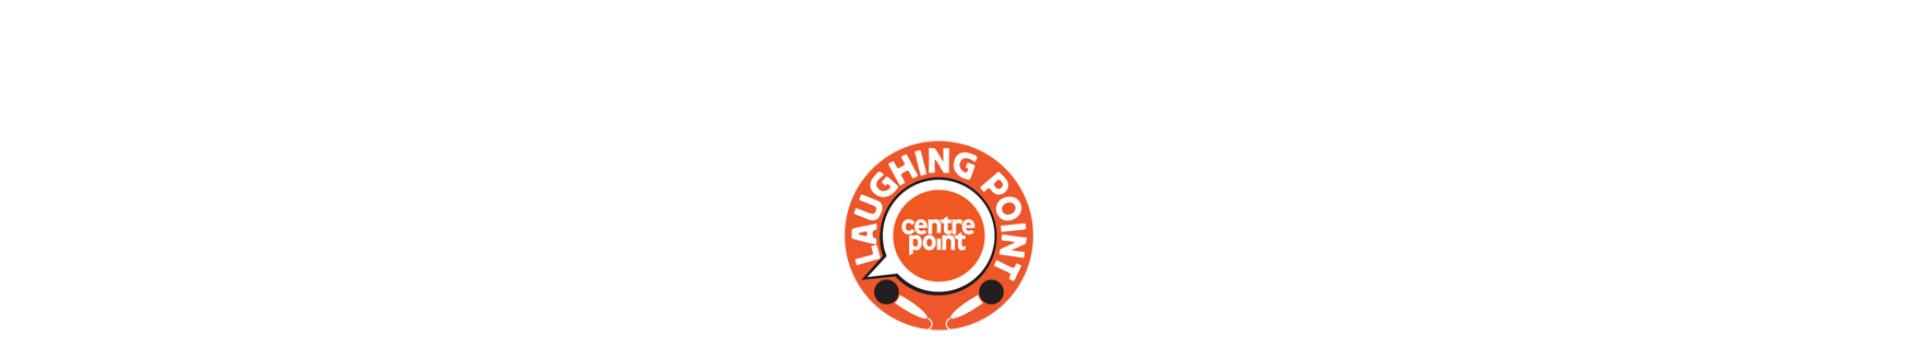 Centrepoint's Laughing Point banner image